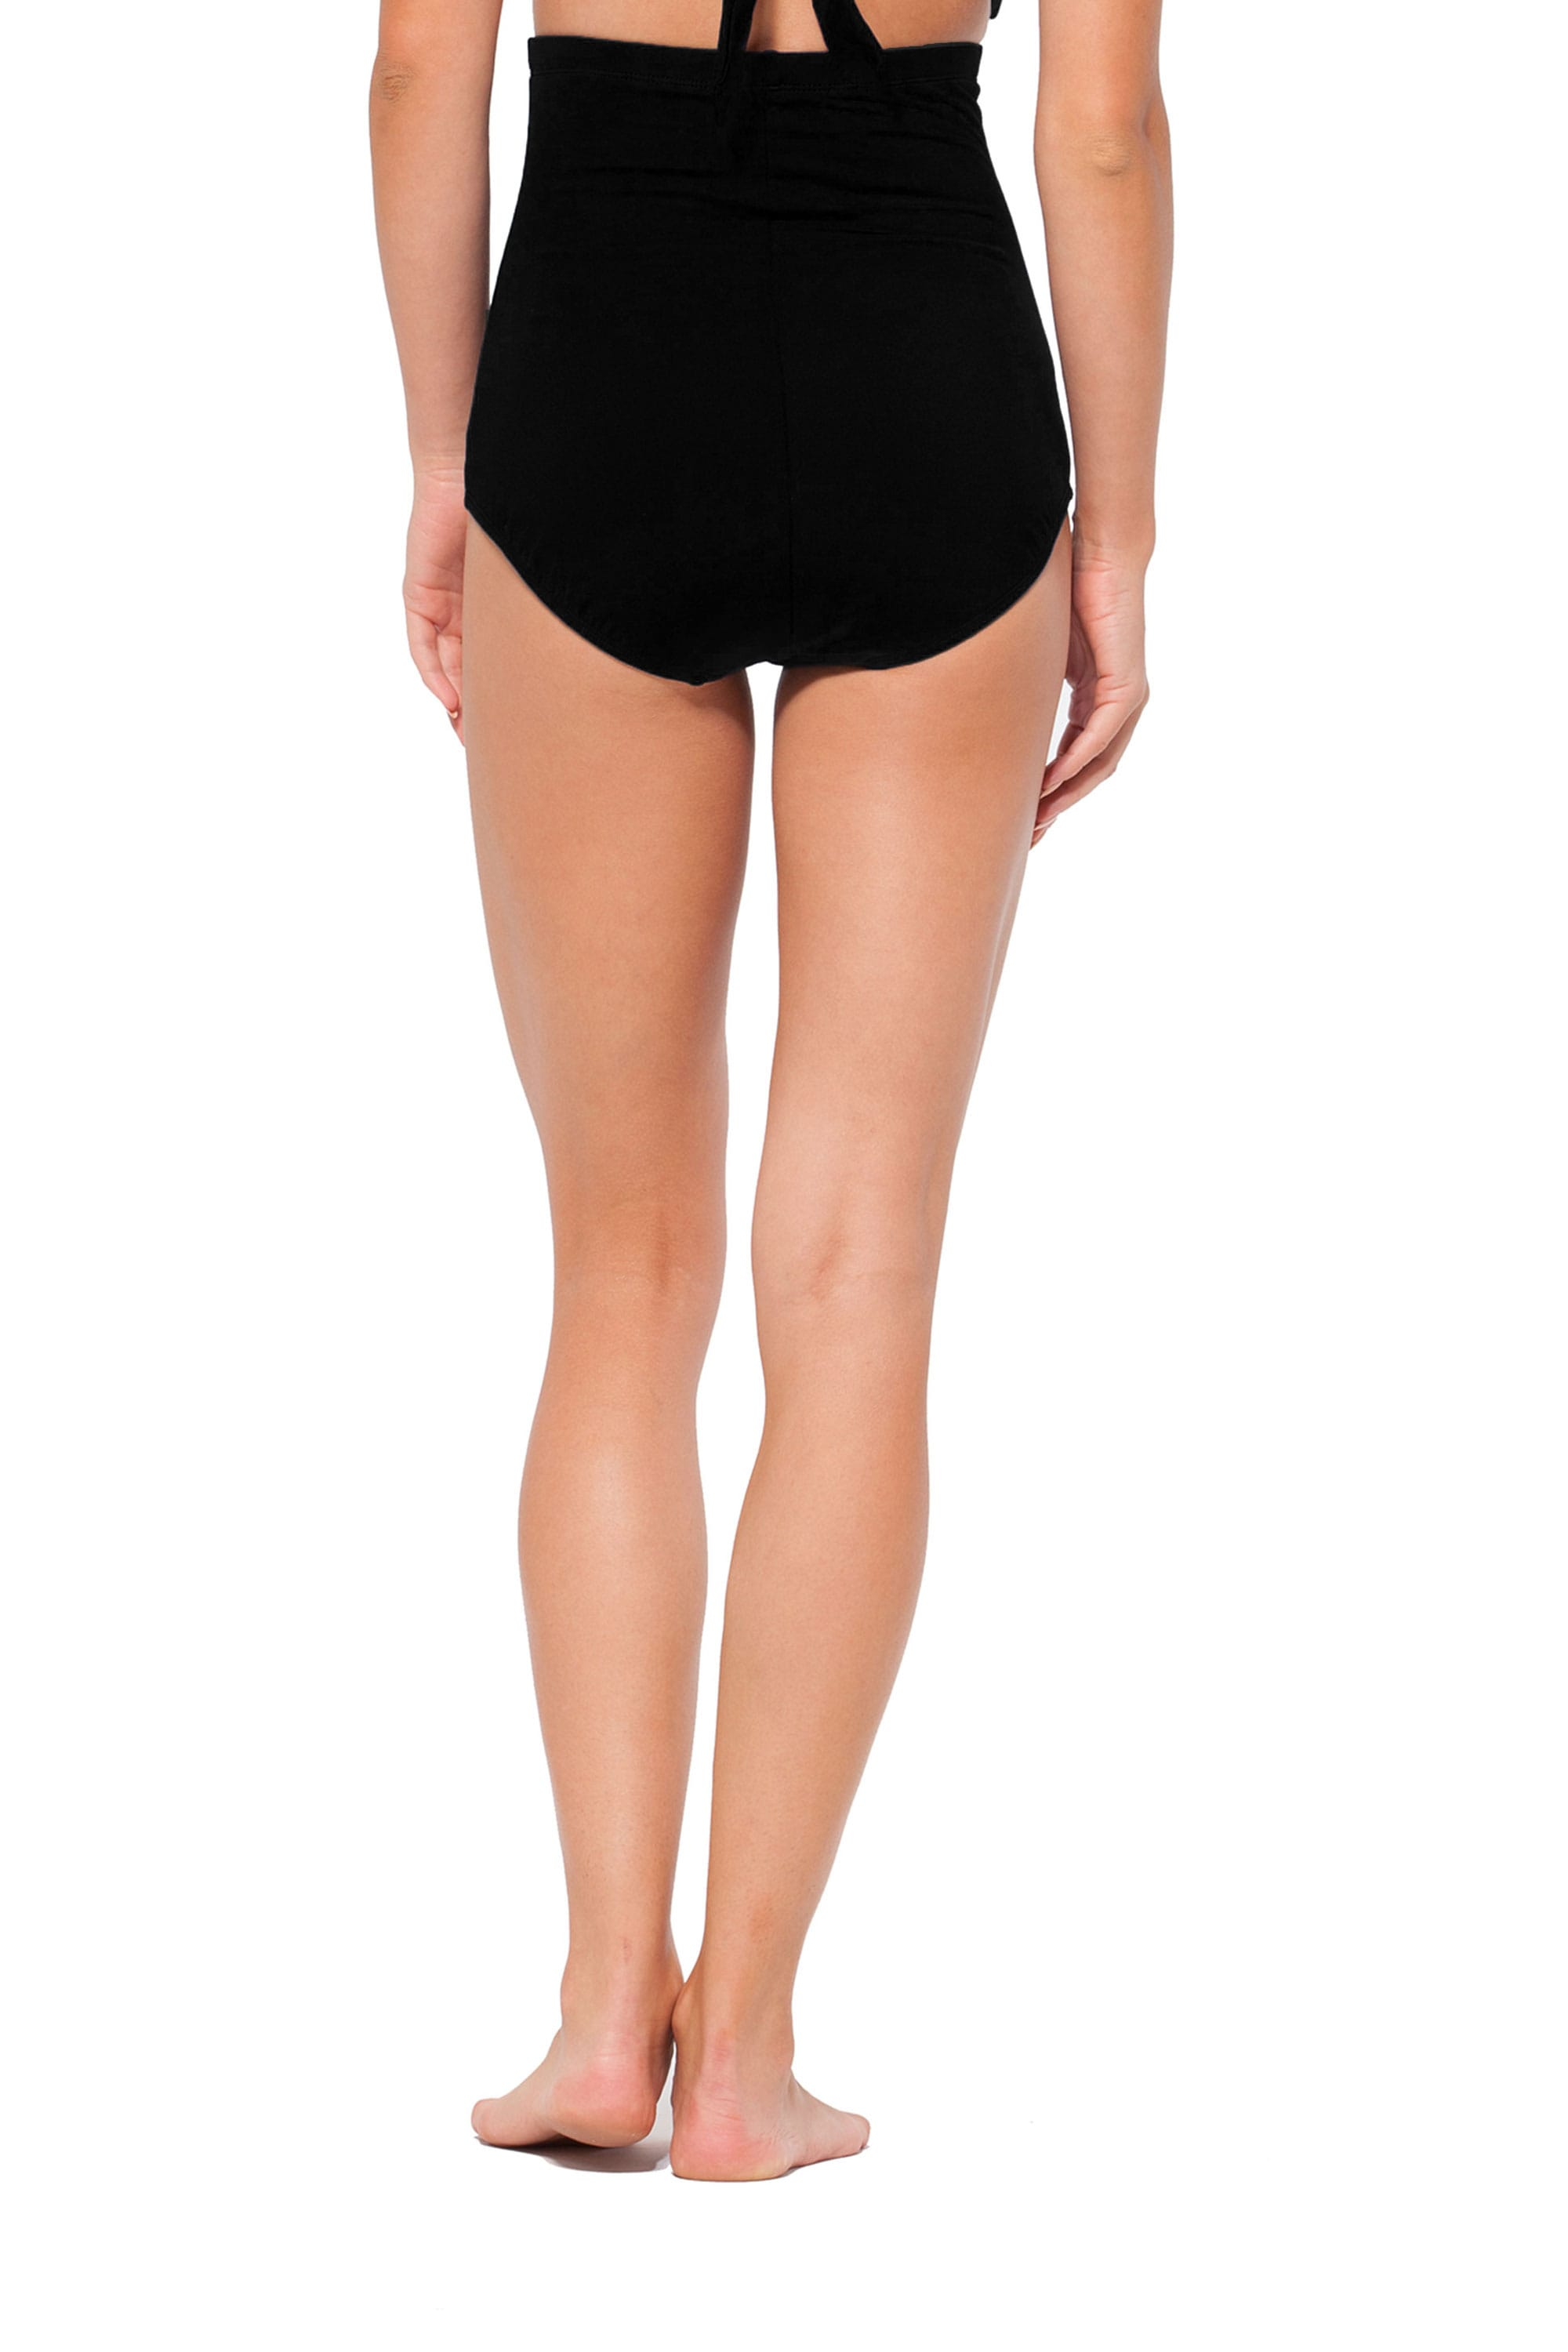 Anne Cole® Live in Color Tummy Control Swimsuit Bottom - Black - Back